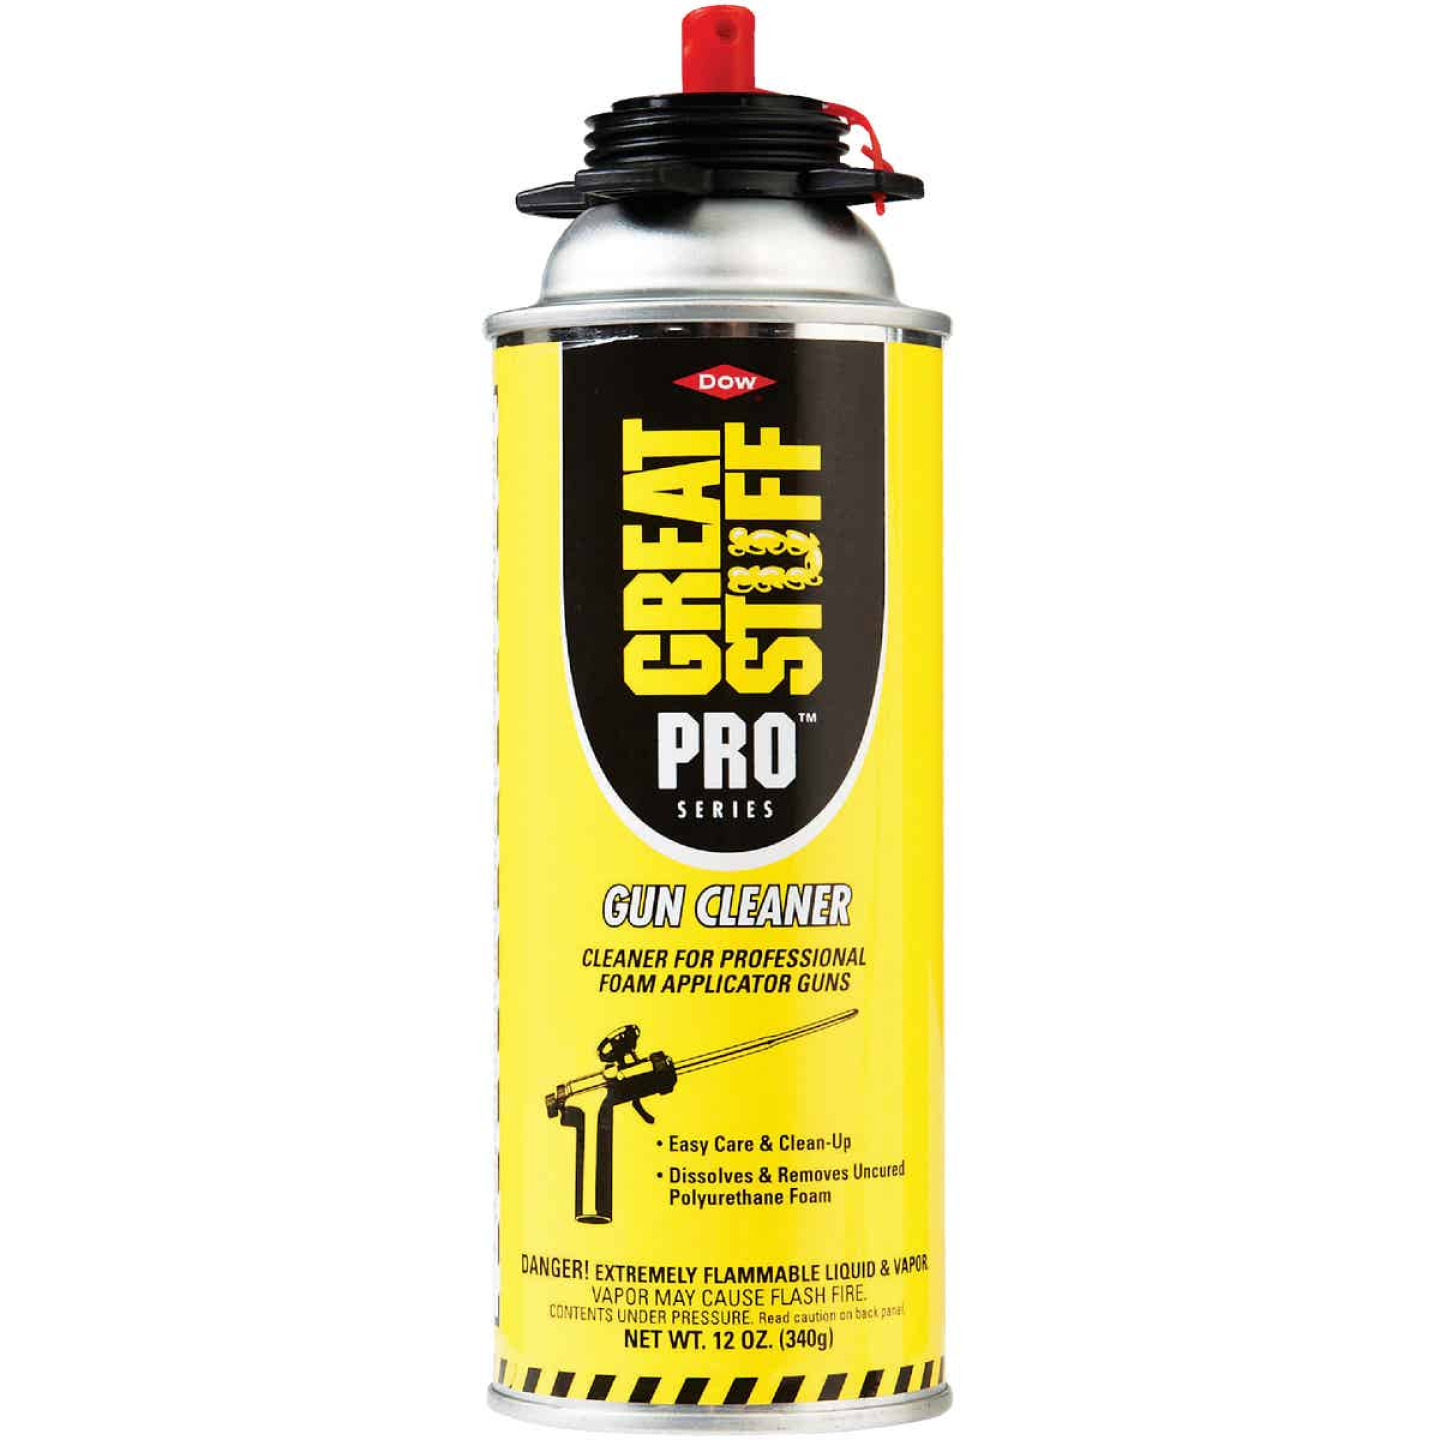 Great Stuff Pro 12 Oz. Foam Cleaner Image 2